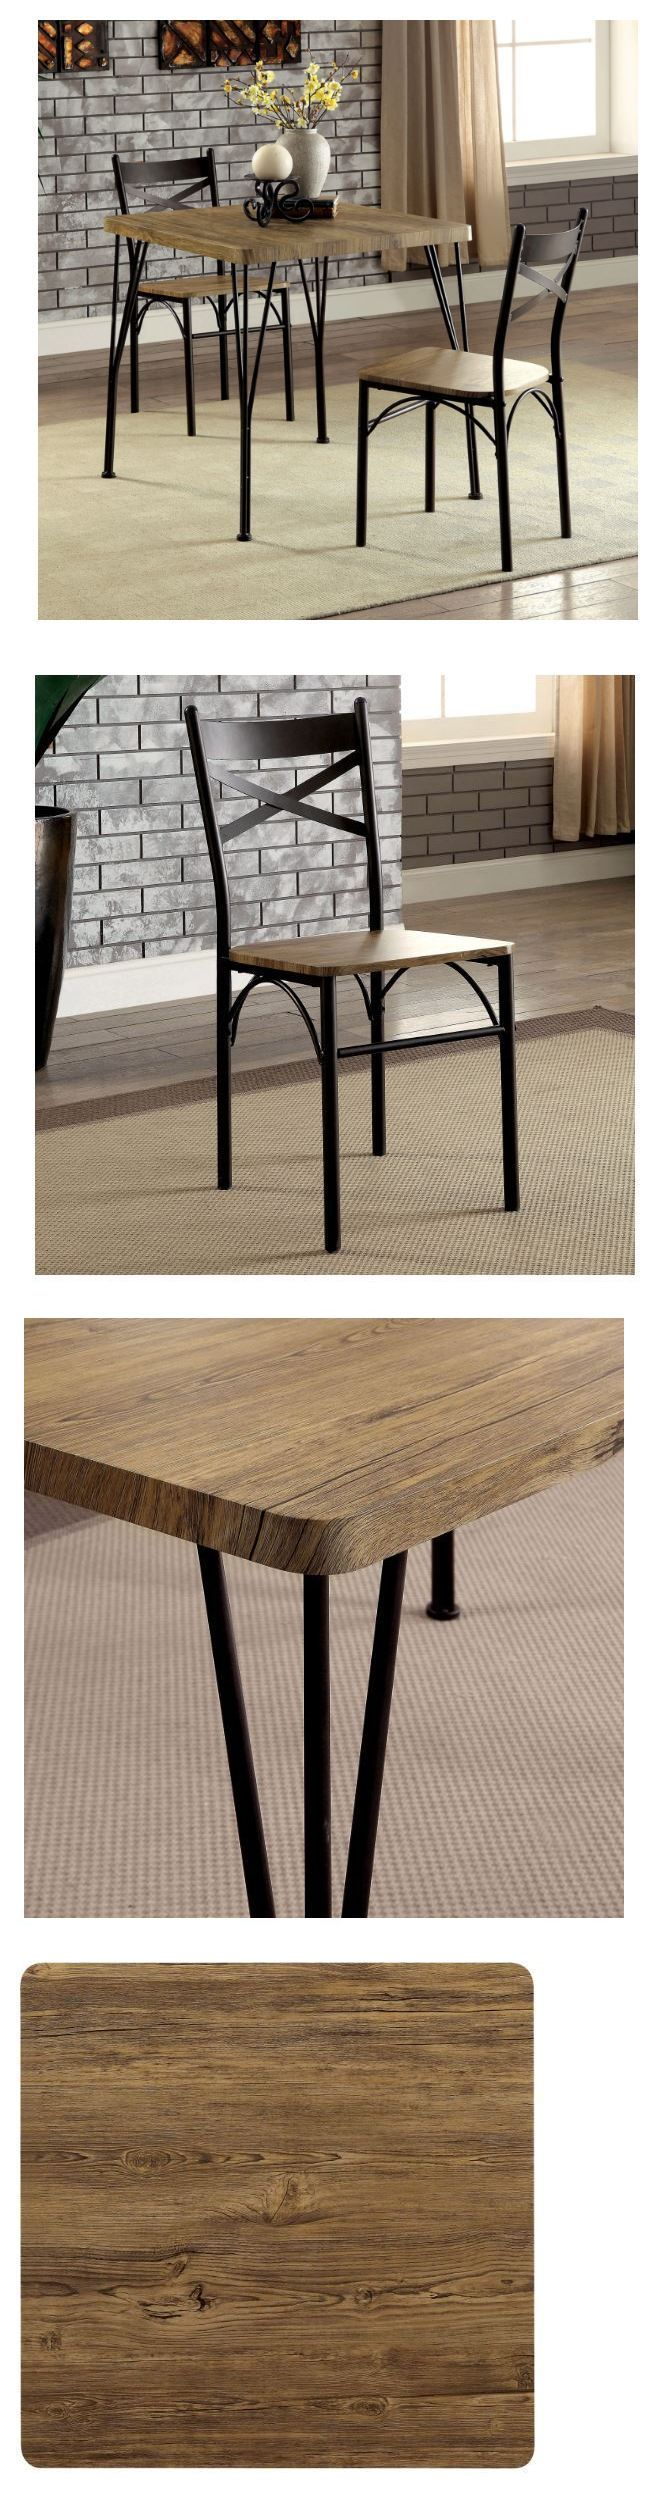 Dining Sets 107578: Dining Table Set For 2 Small Kitchen Table And Chairs Breakfast Nook Square -> BUY IT NOW ONLY: $144.85 on eBay!